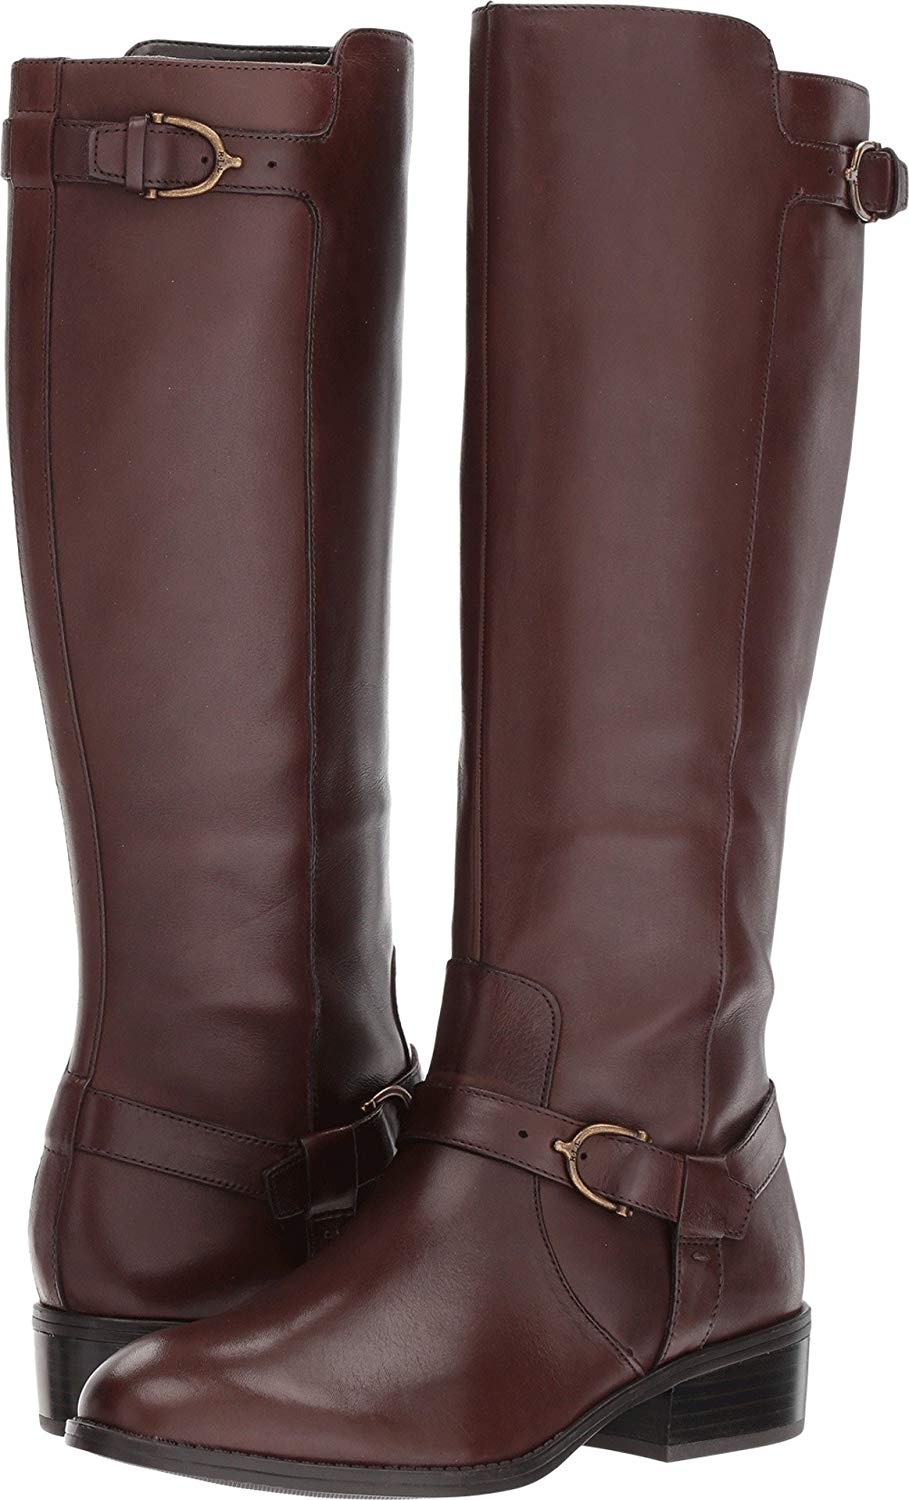 LAUREN by Ralph Lauren Margarite Womens Boots Dark Brown Burnished Calf 7.5  US